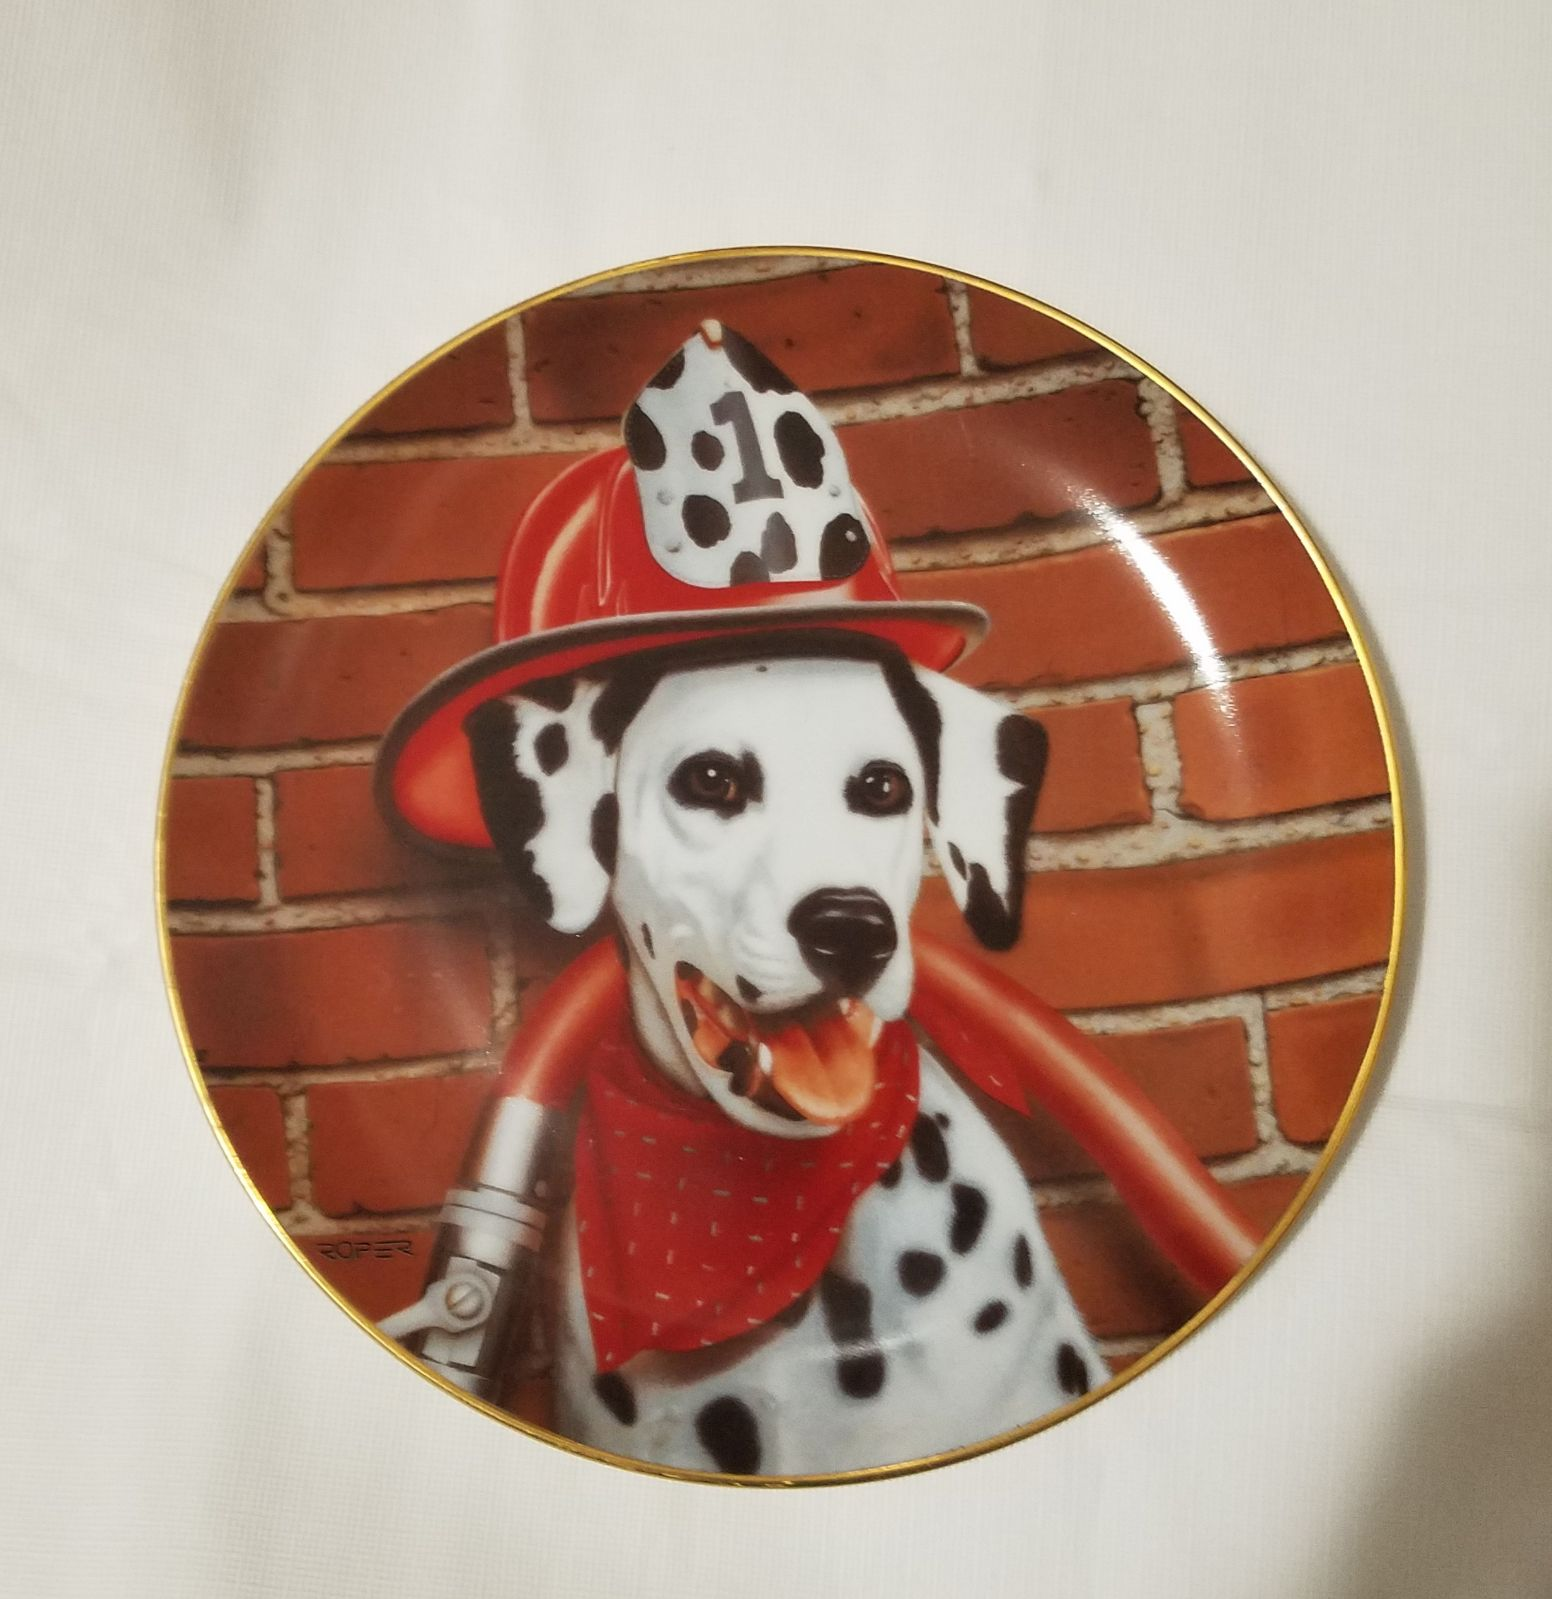 Dalmatian sparky, fire capers